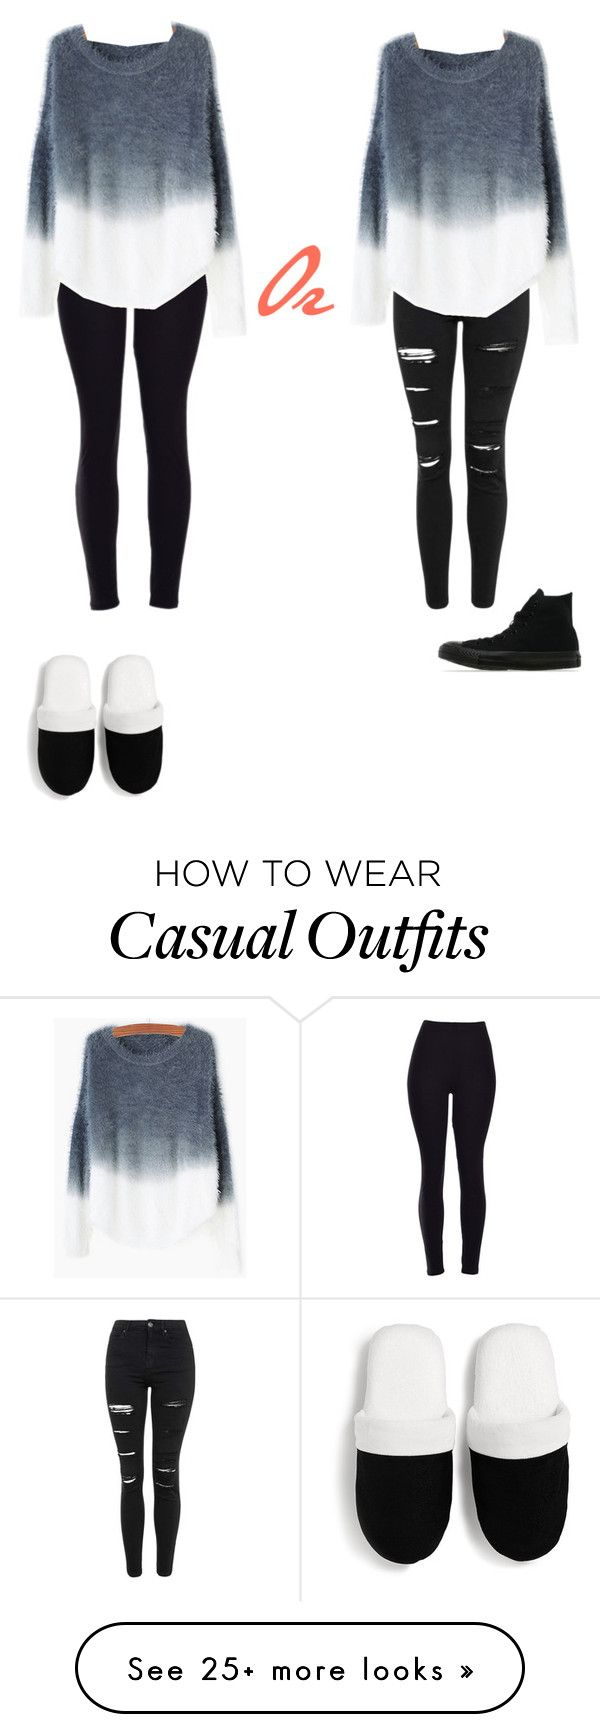 """COMFY OR CASUAL"" by plastic-diamond-rings on Polyvore featuring Topshop, Converse, Versace, women's clothing, women's fashion, women, female, woman, misses and juniors"